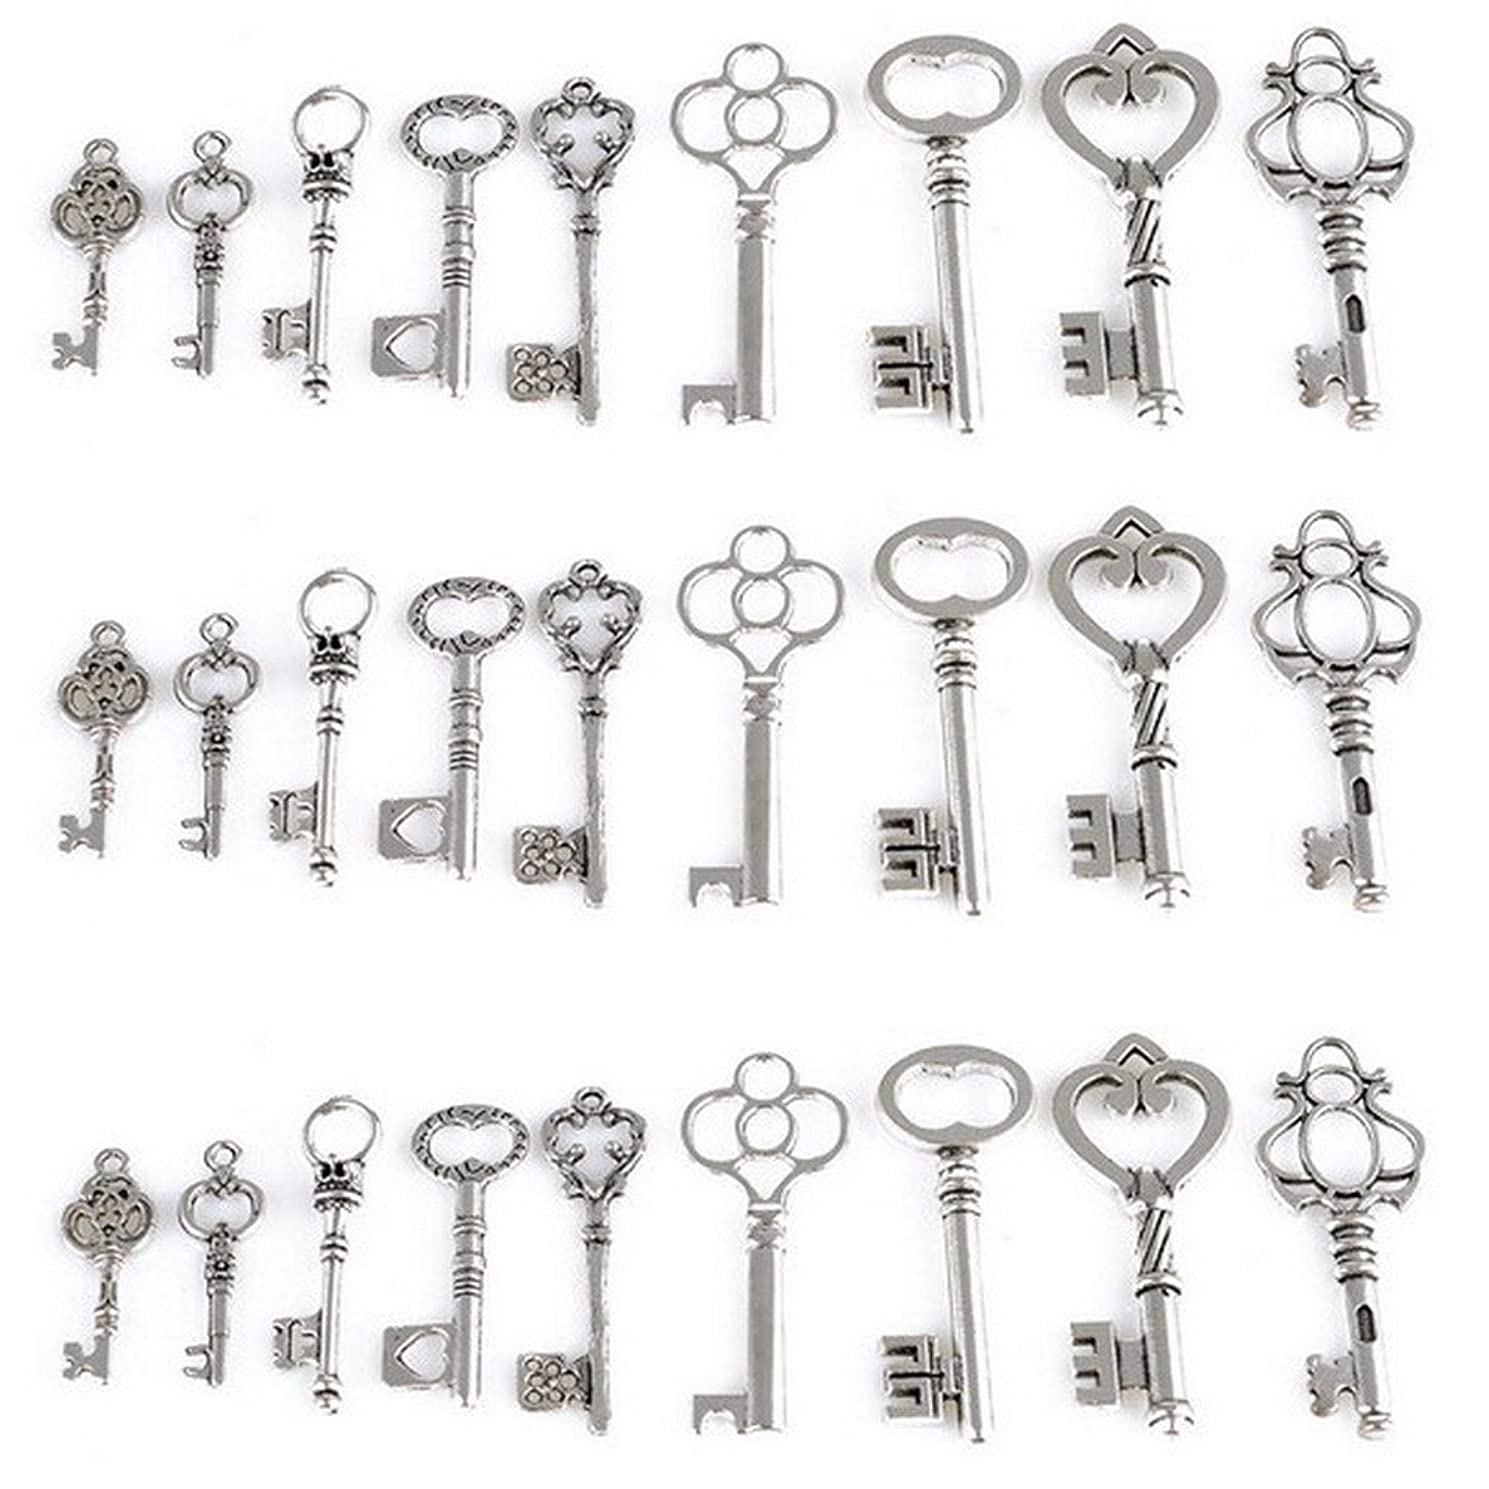 AlphaAcc Skeleton Key Charm Set in Antique Silver 9 Different Styles - Vintage Style Key Charms (45 Charms) (Silver)